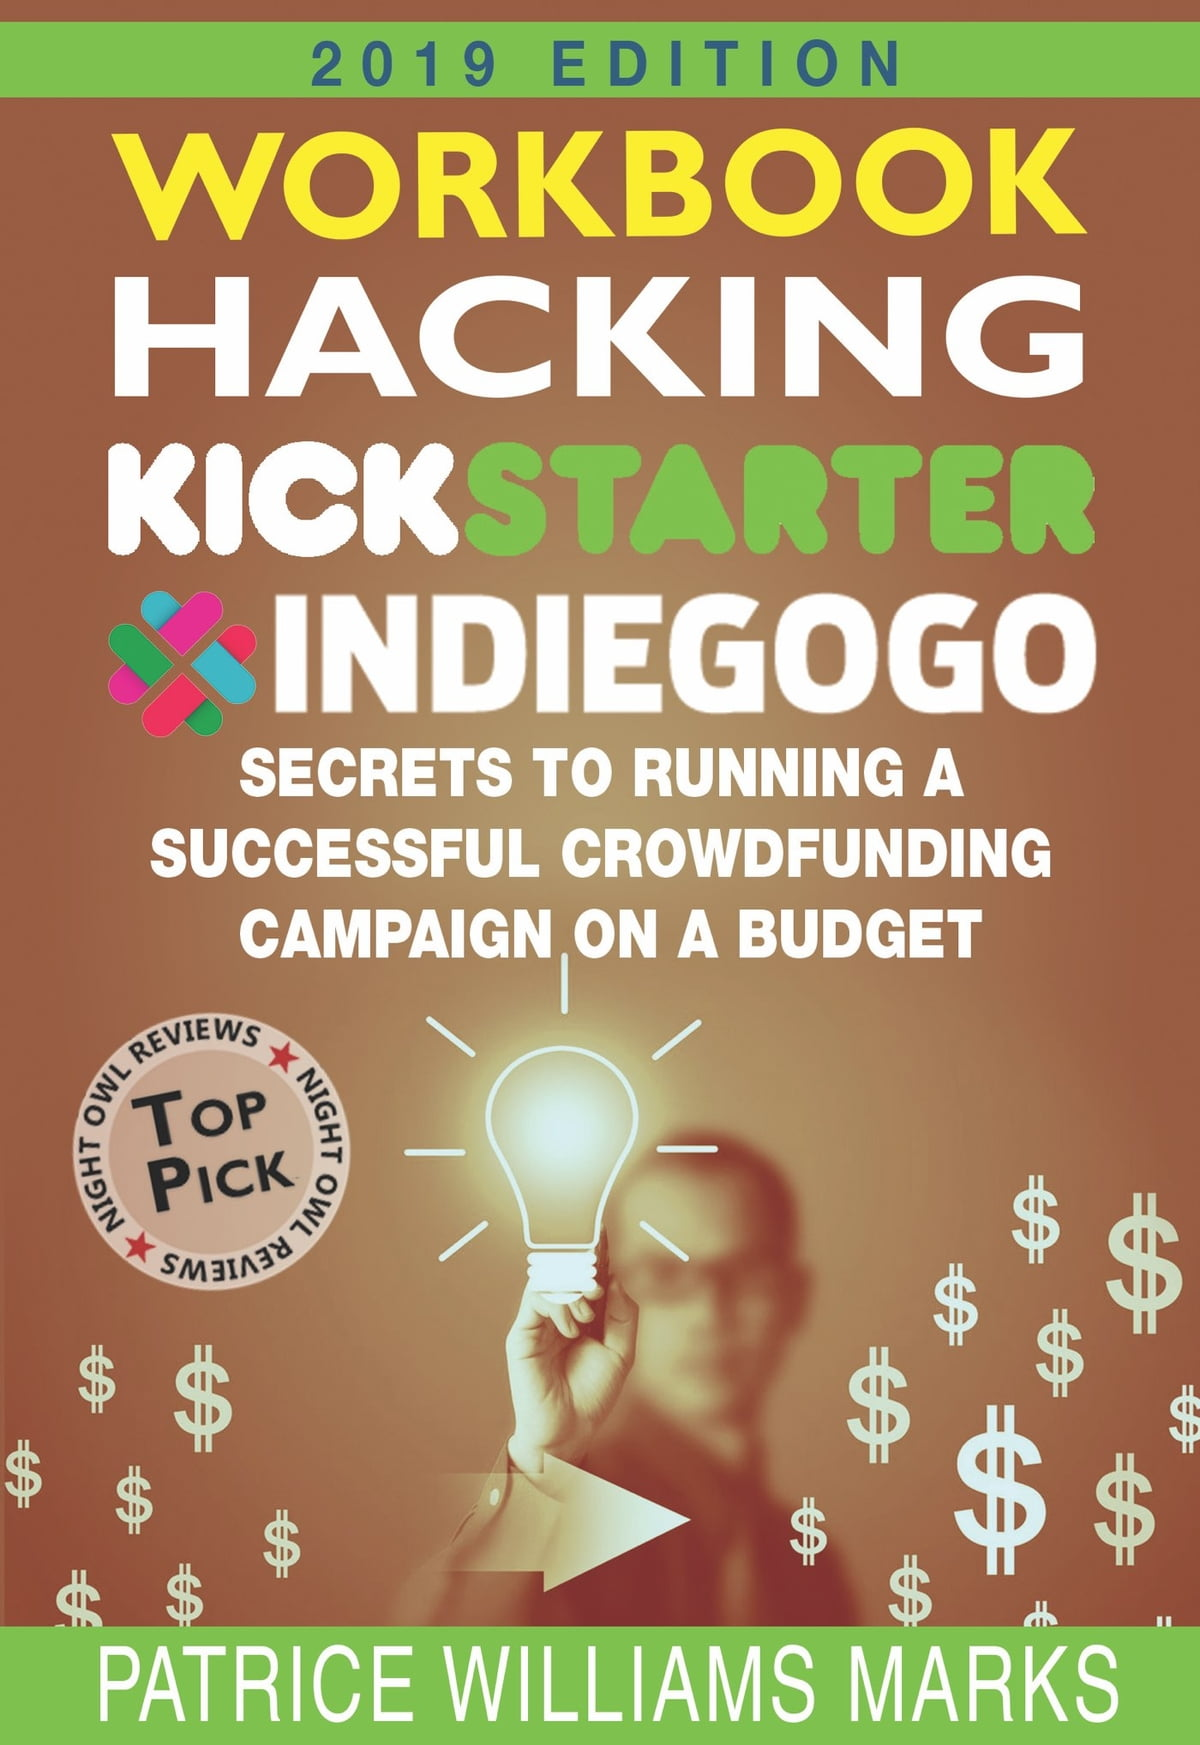 WORKBOOK: Hacking Kickstarter, Indiegogo: How to Raise Big Bucks in 30  Days: Secrets to Running a Successful Crowdfunding Campaign on a Budget  ebook